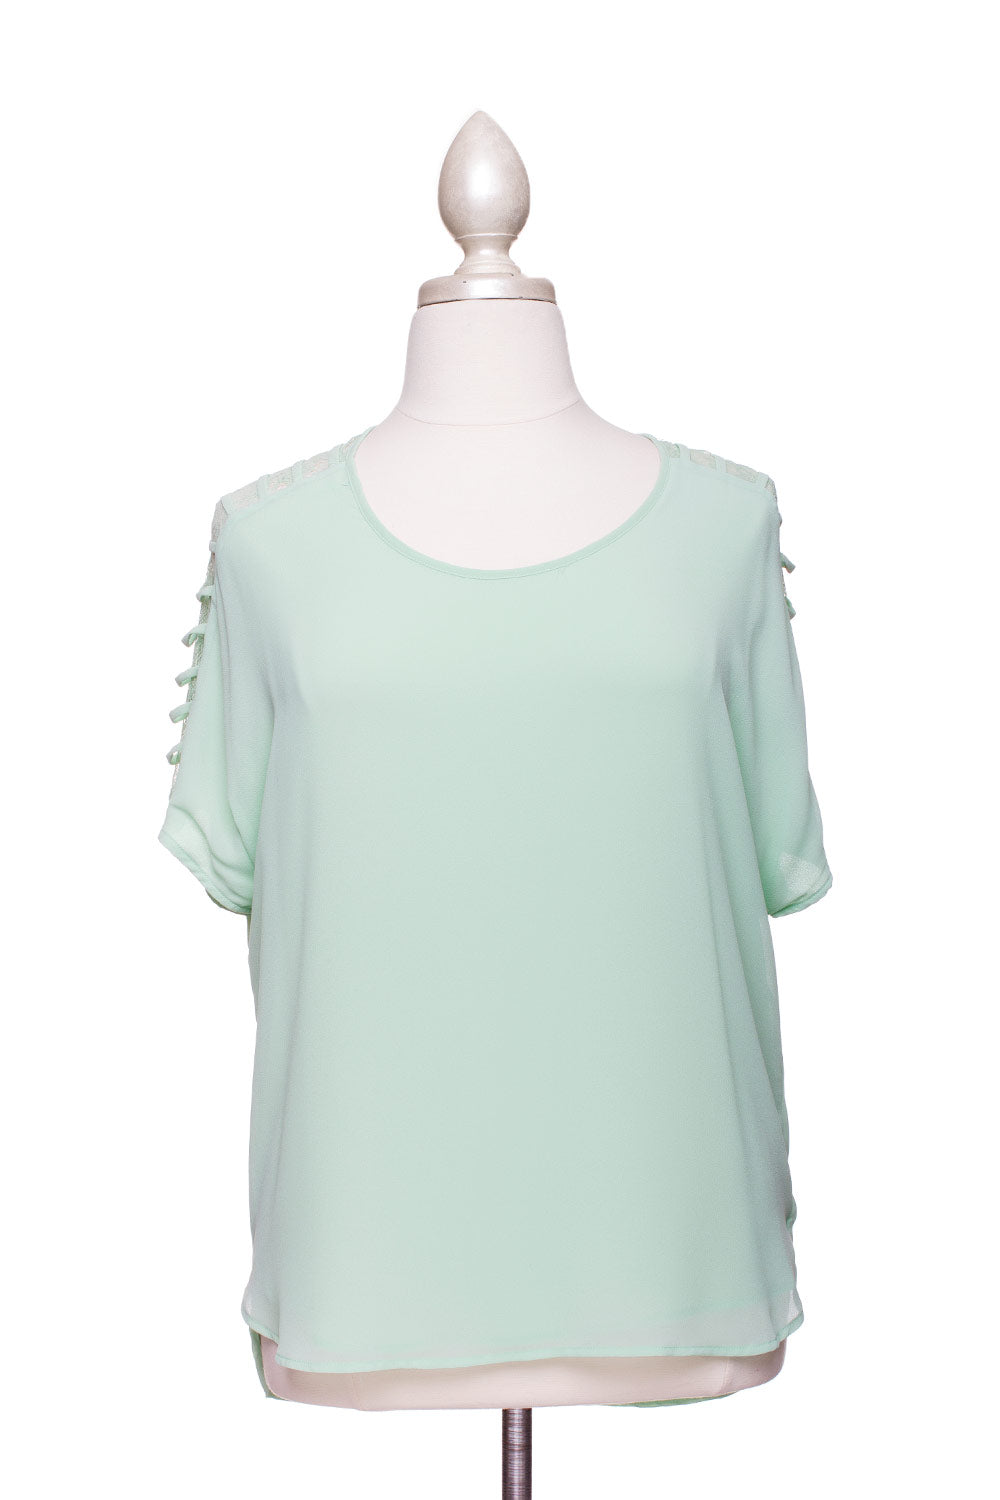 Type 2 Minty Fresh Top